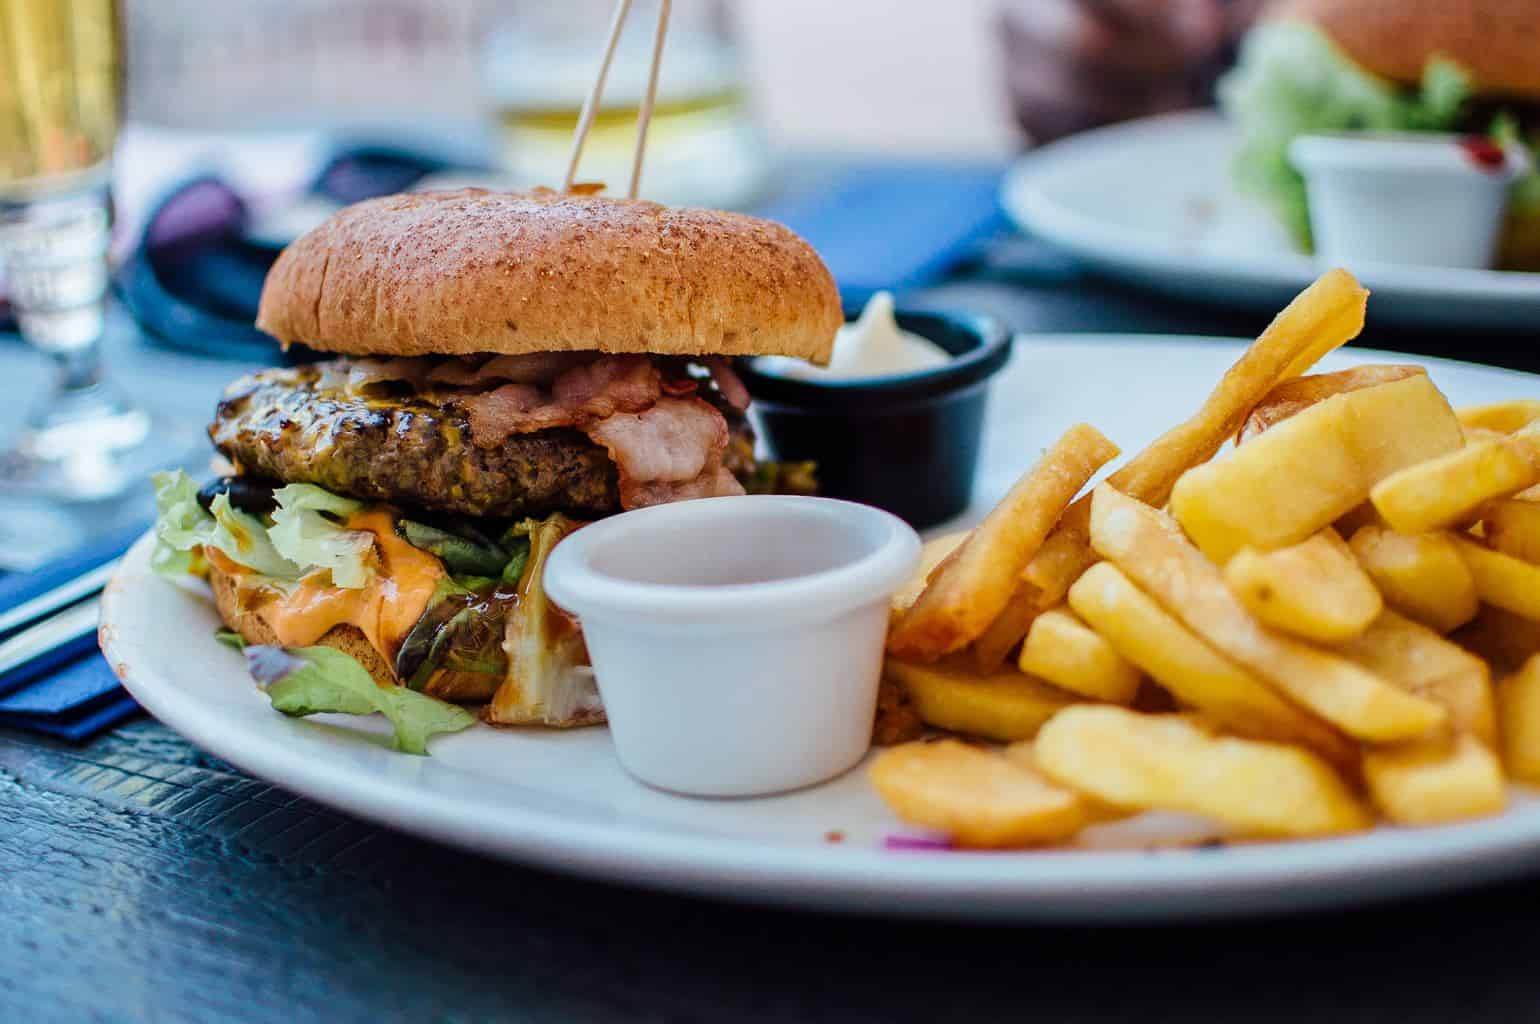 photo of a burger and fries